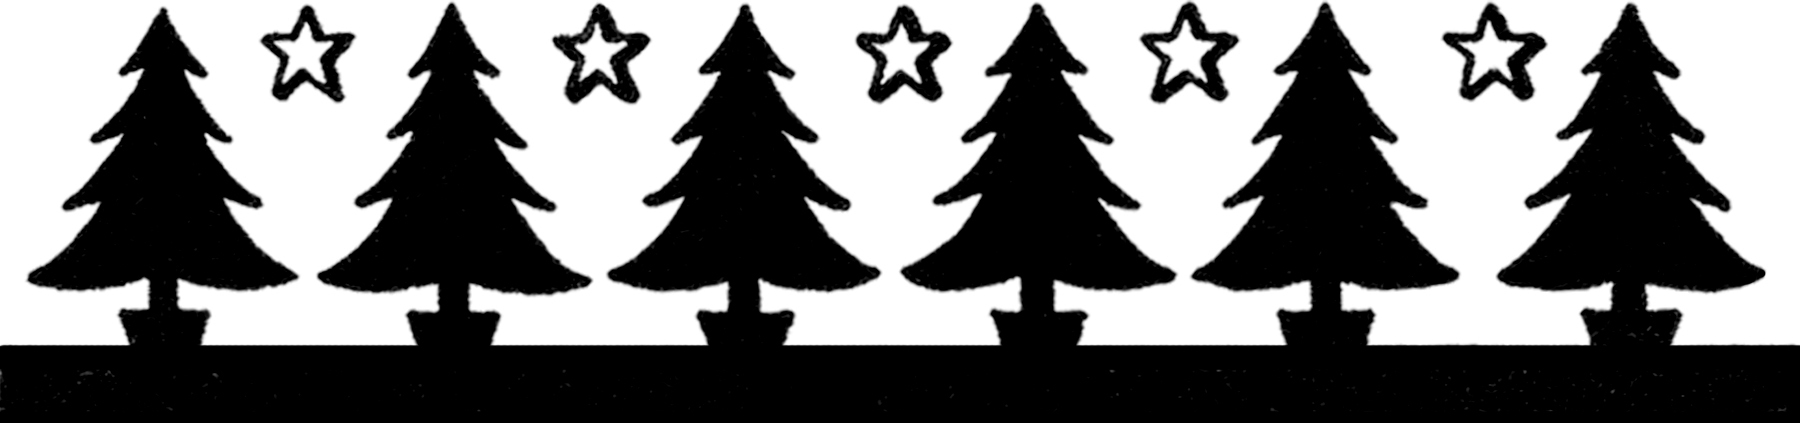 http://thegraphicsfairy.com/wp-content/uploads/2014/10/Christmas-Tree-Silhouette-Image-GraphicsFairy.jpg